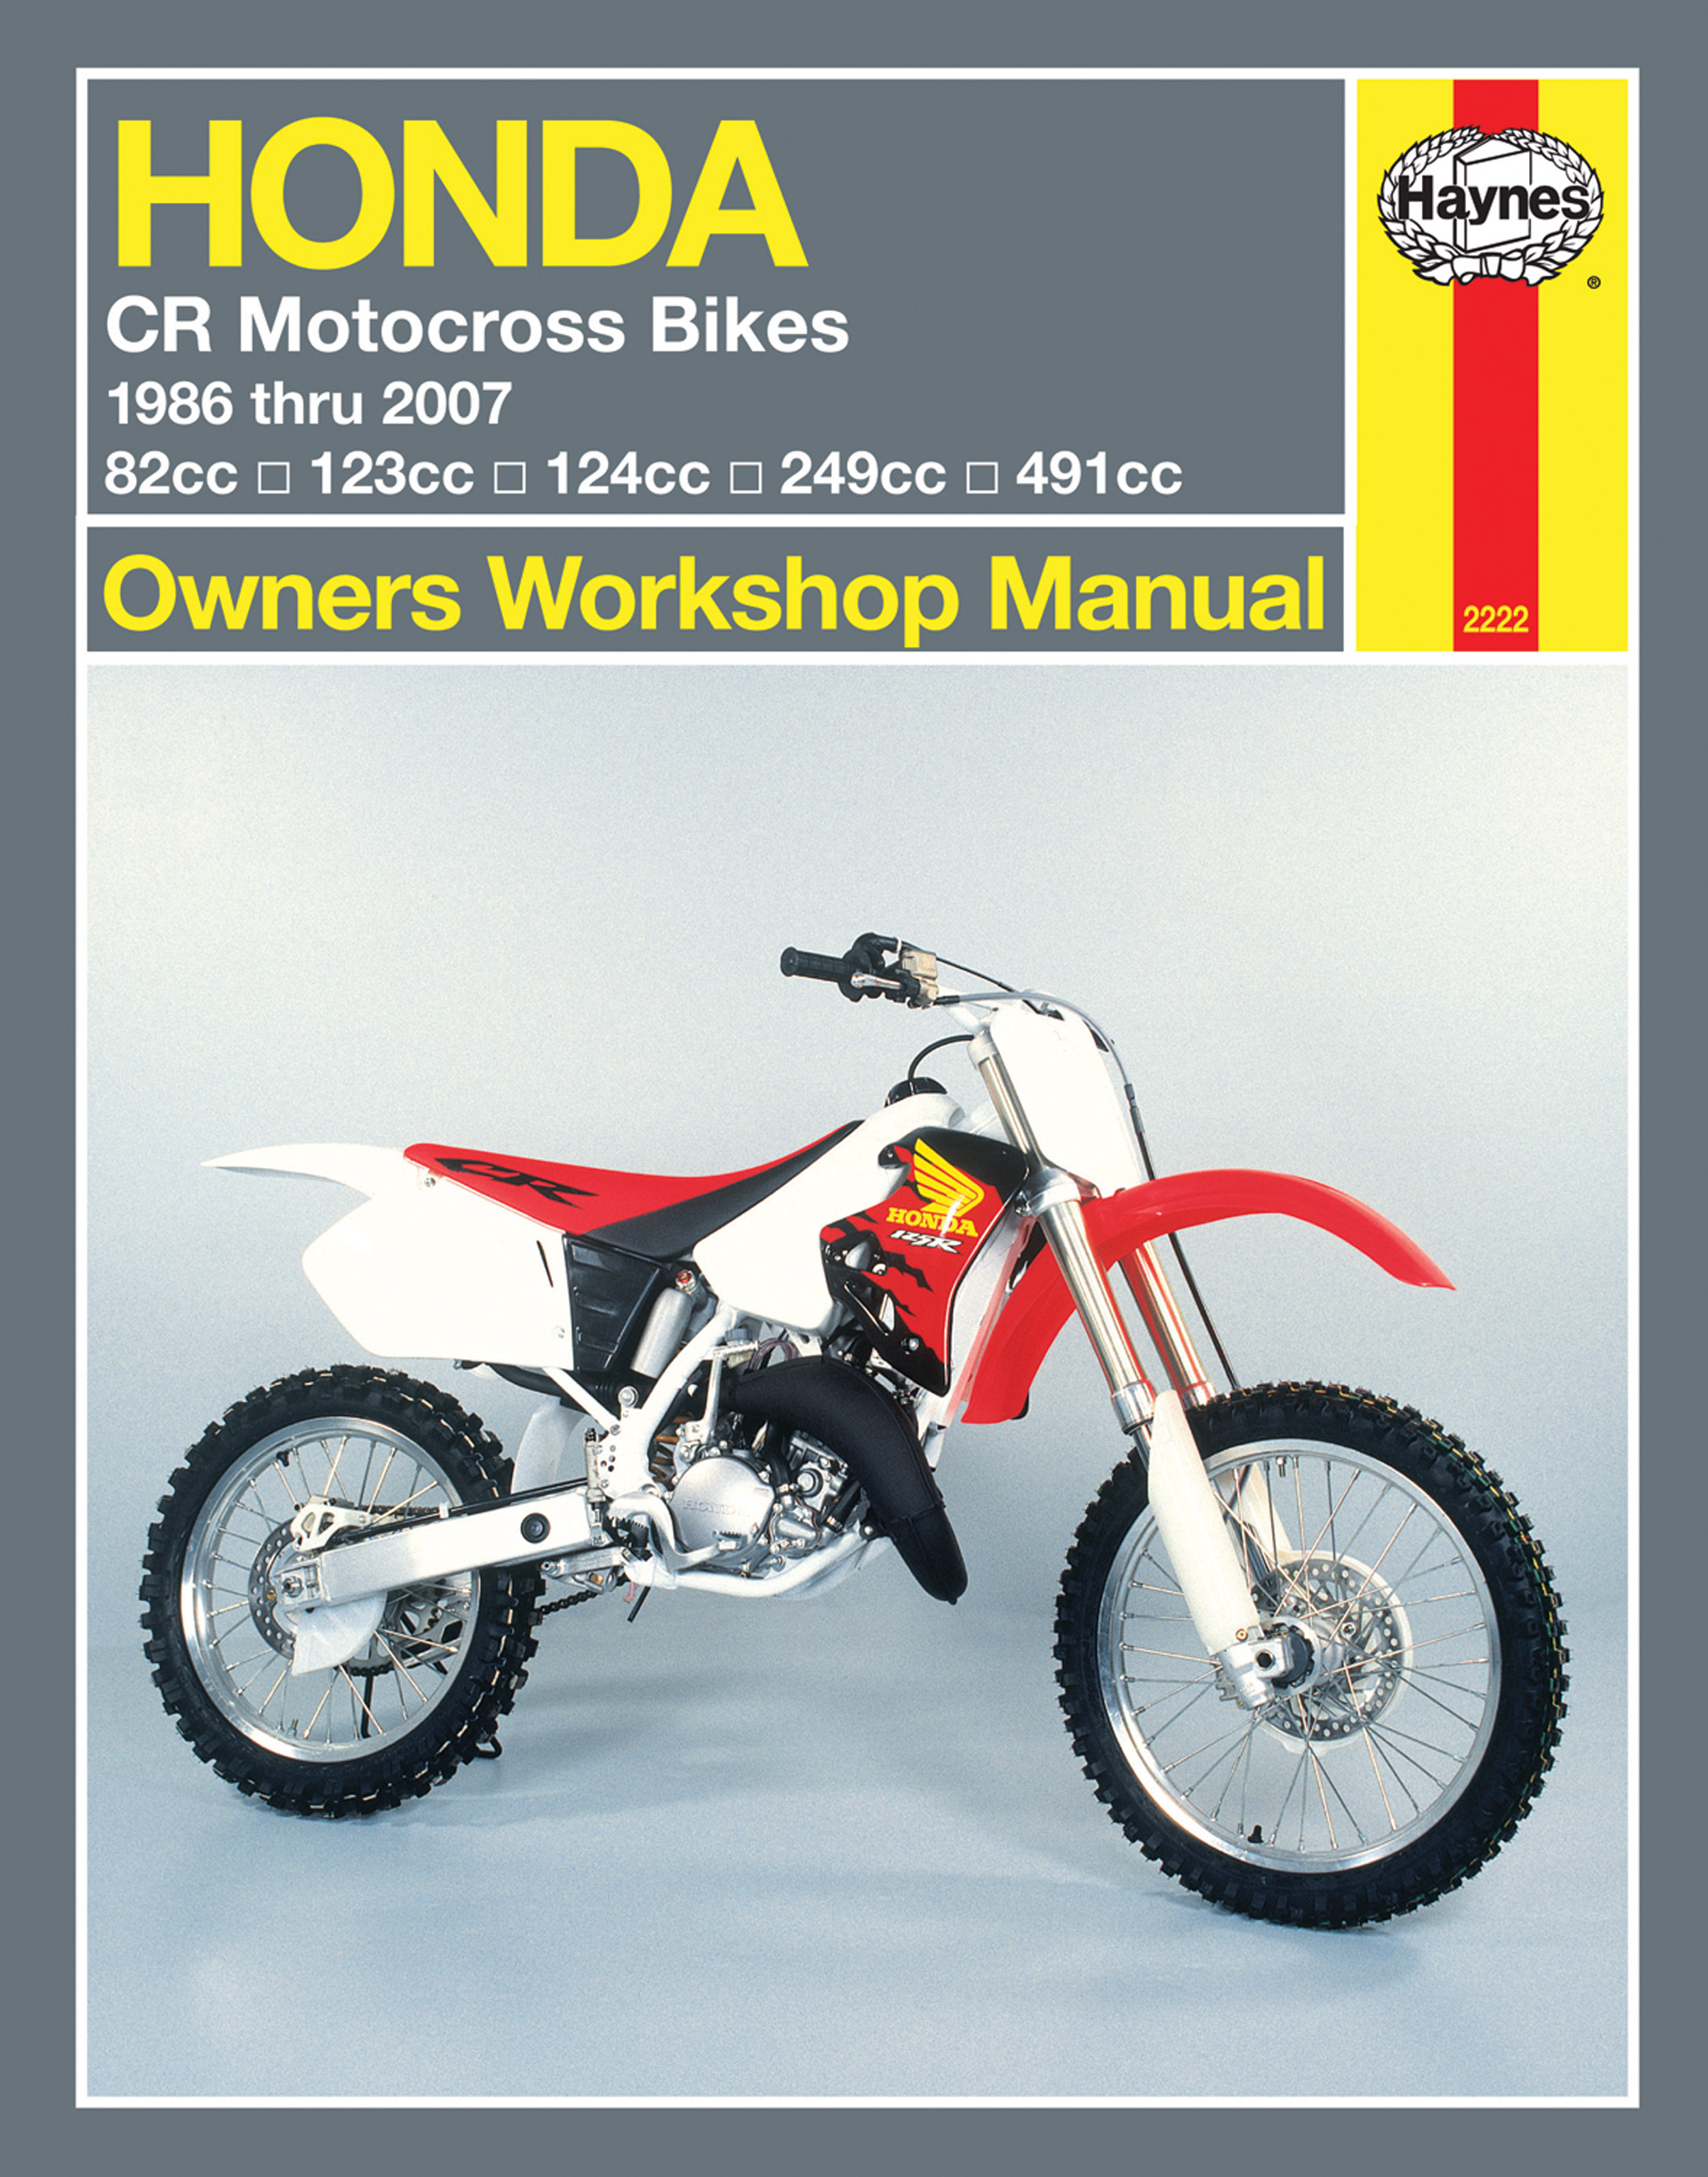 honda cr 125 cdi ignition system wiring schematic with Honda Cr125 Wiring Diagram on Wiring Diagram Honda Wave 125 as well Ten Tec Mic Wiring Diagram together with Ford Coil Wiring Diagram Of A 1974 On The further Gy6 Regulator Wiring Diagram together with Ten Tec Mic Wiring Diagram.